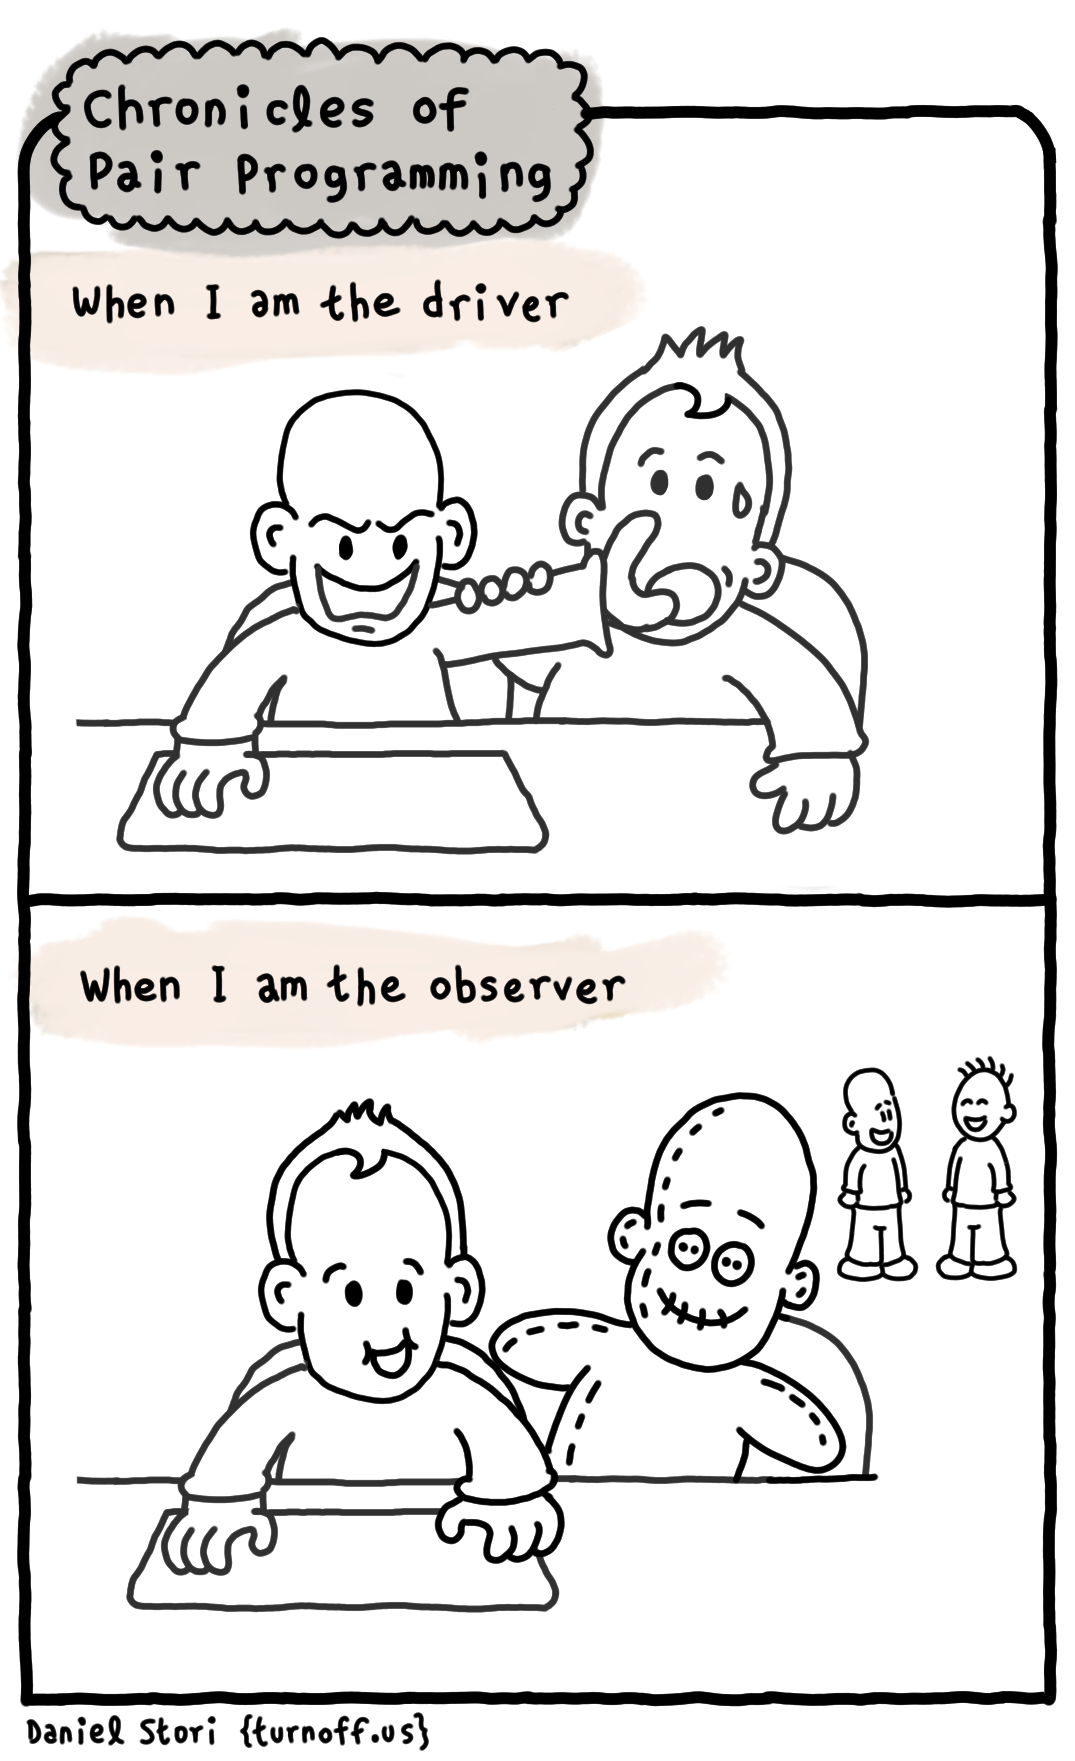 chronicles of pair programming 2 geek comic